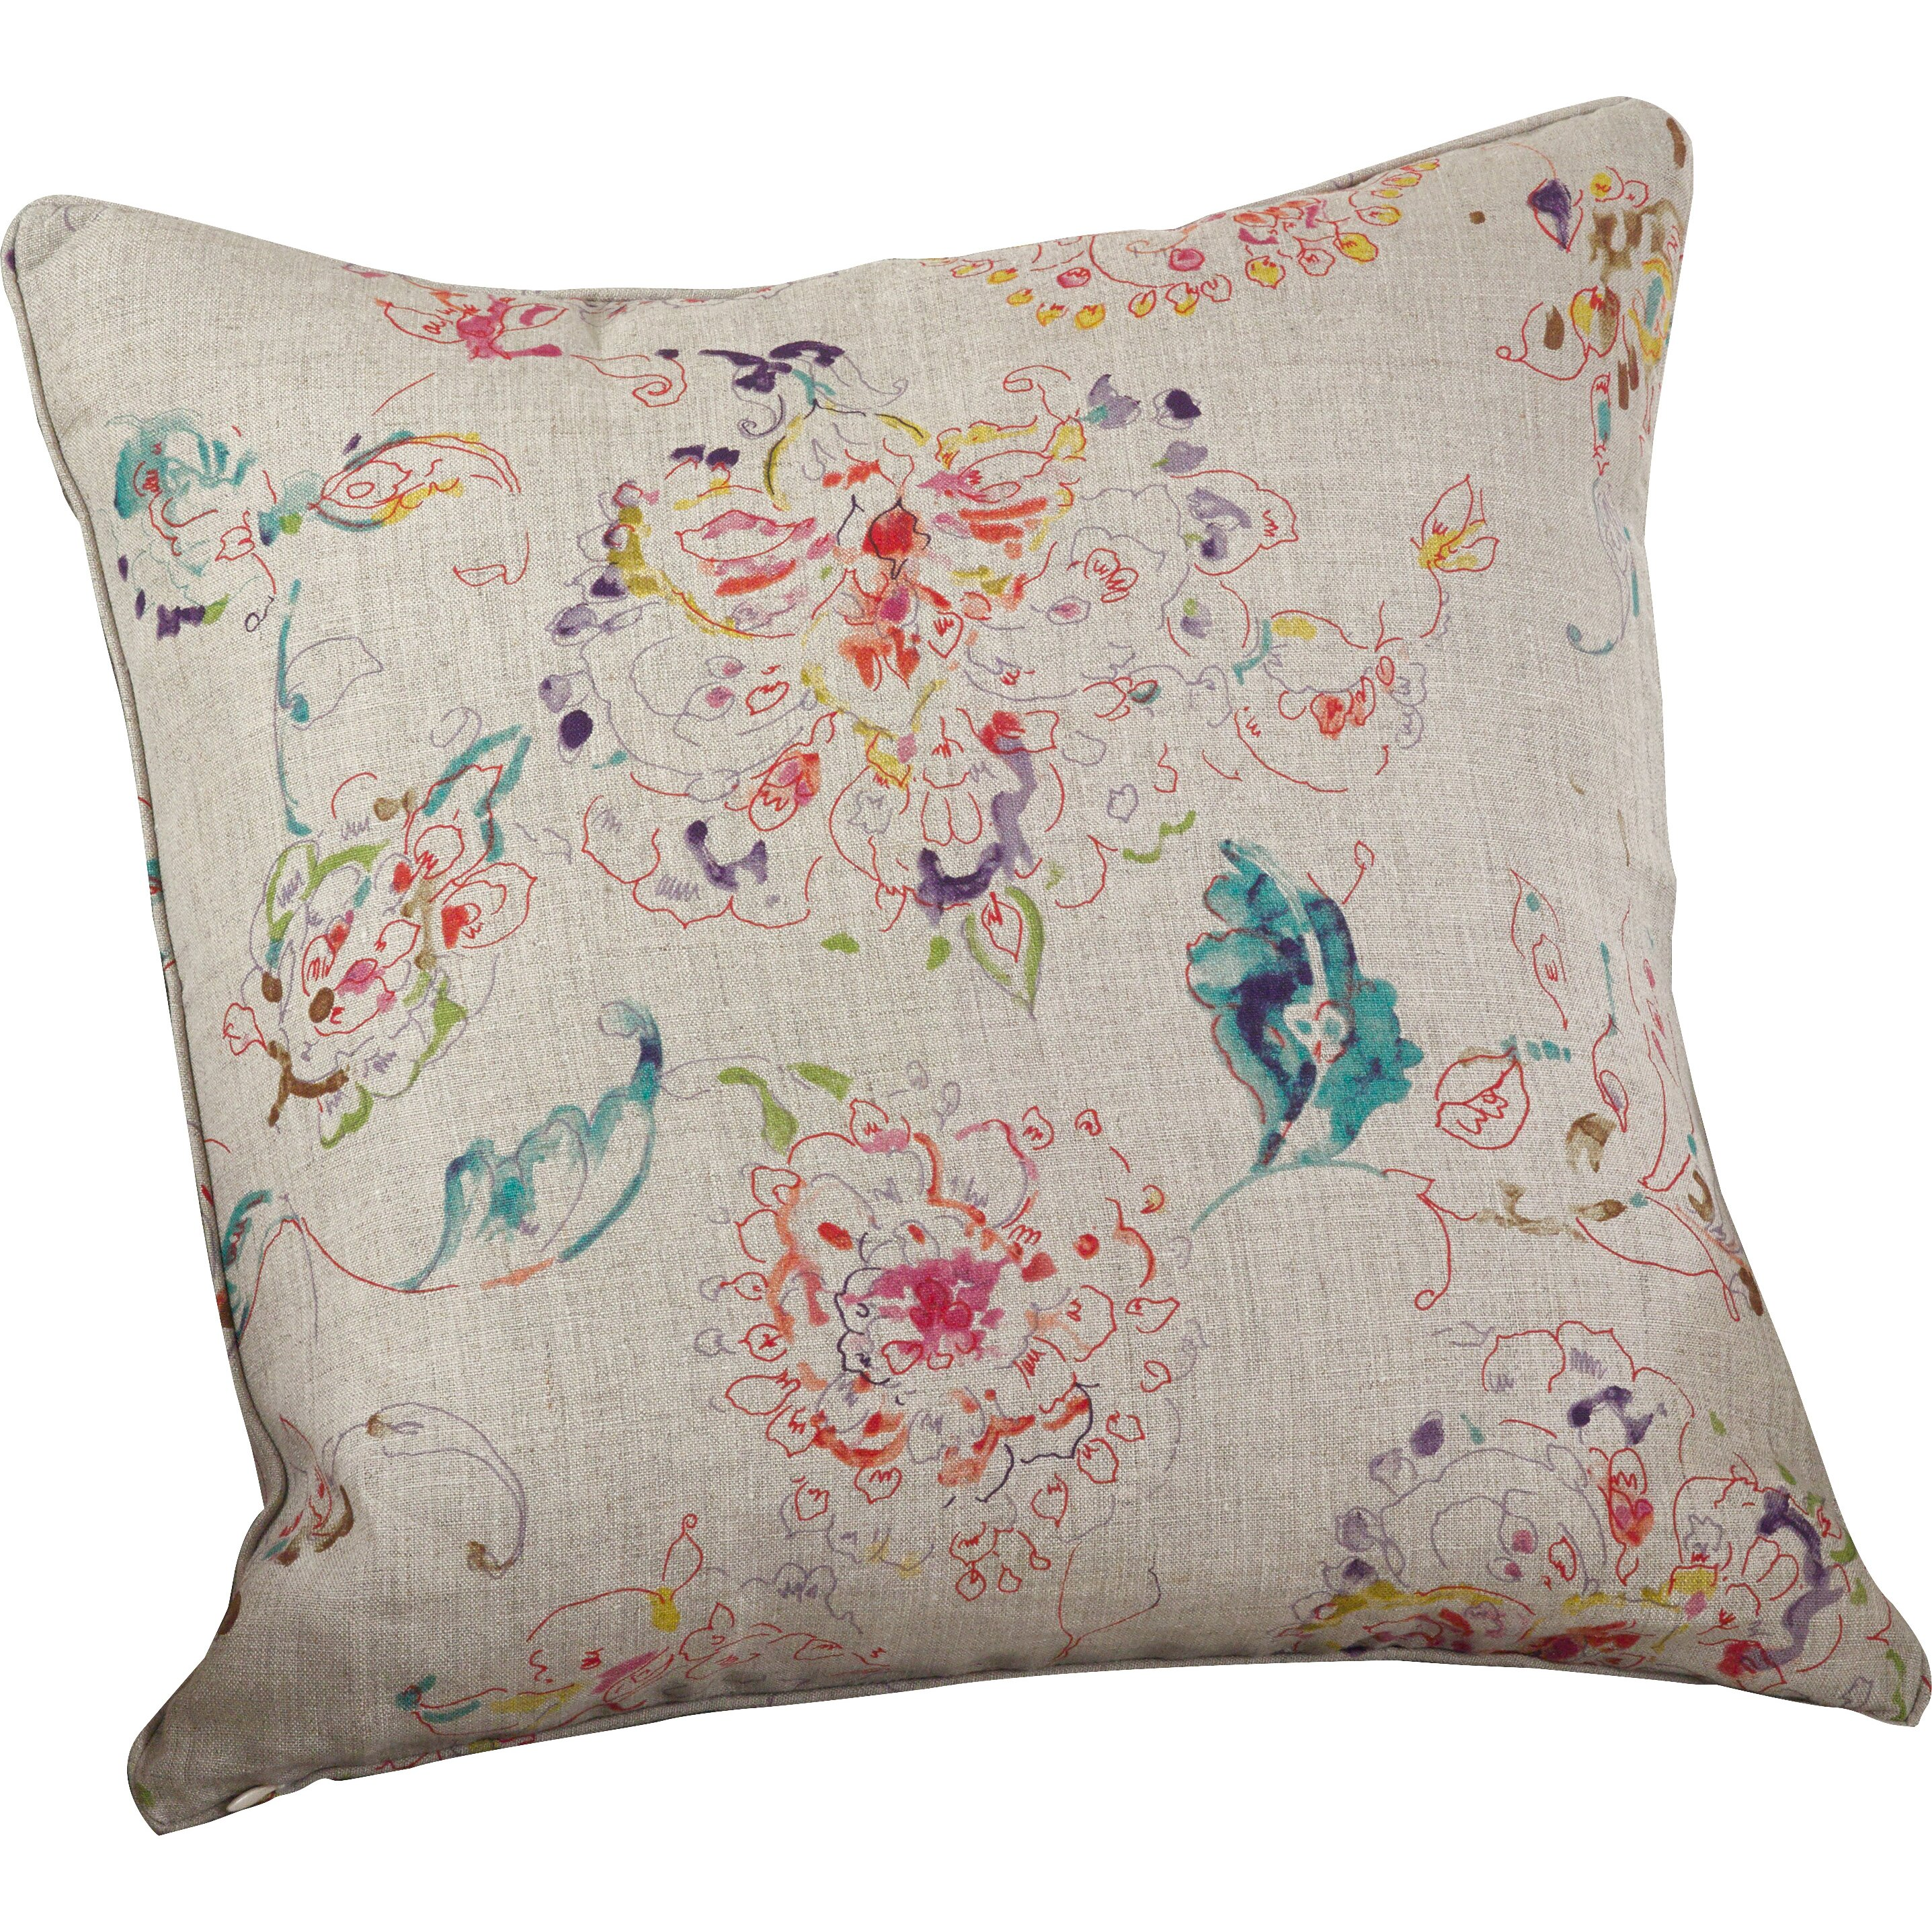 Hudson Throw Pillow Joss & Main